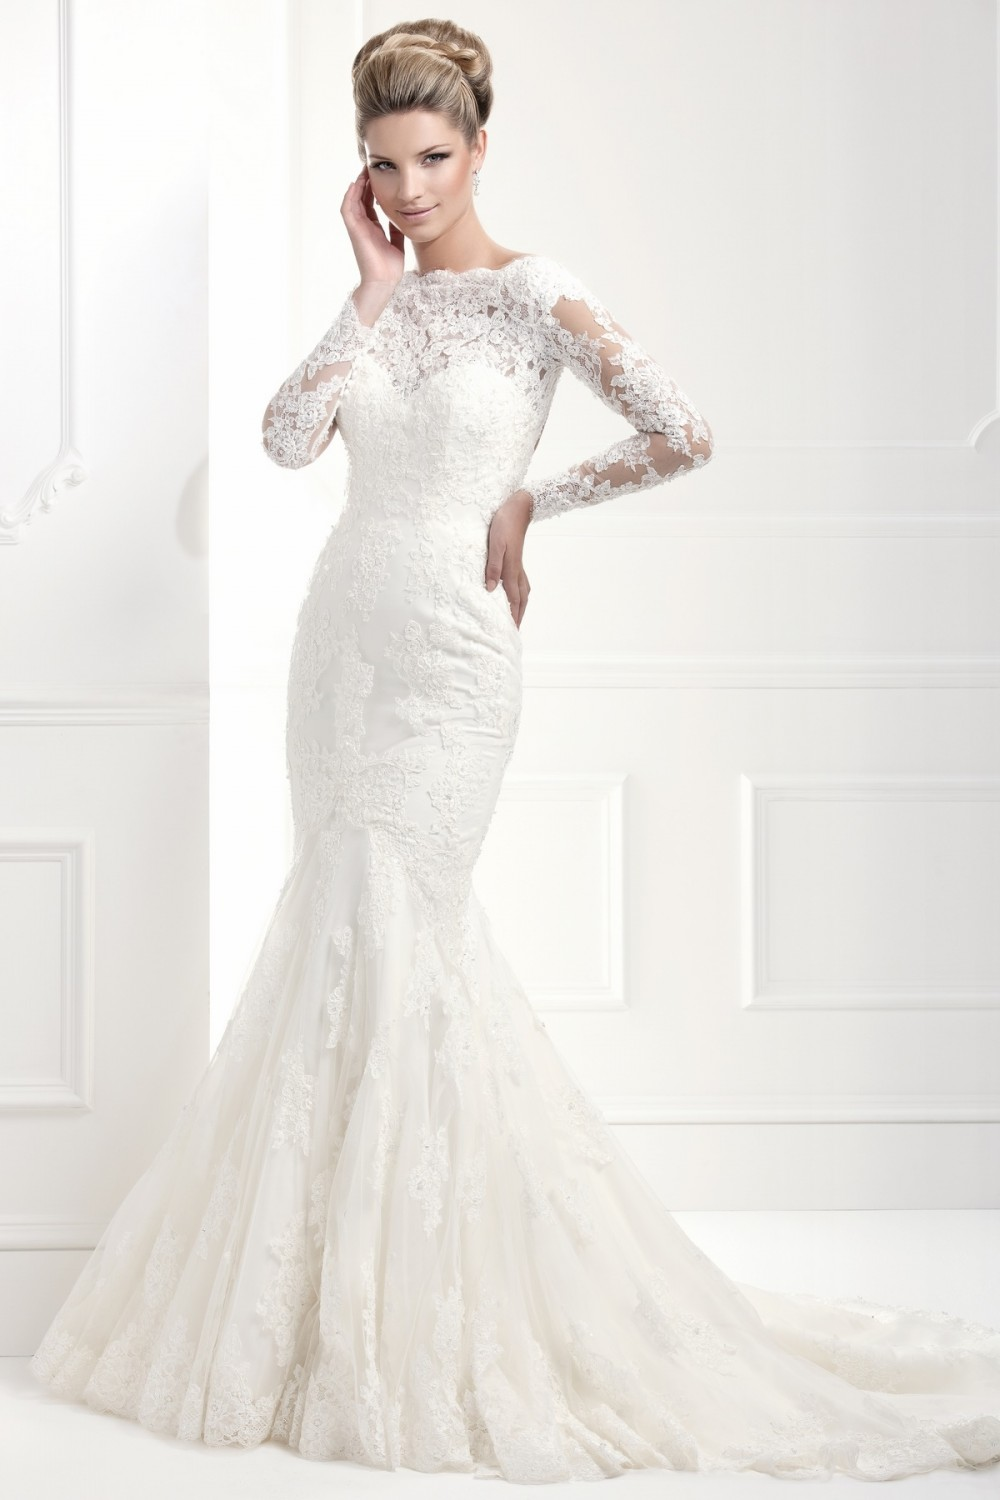 11368A | Ellis Bridals - Modest lace wedding dress with long sleeves